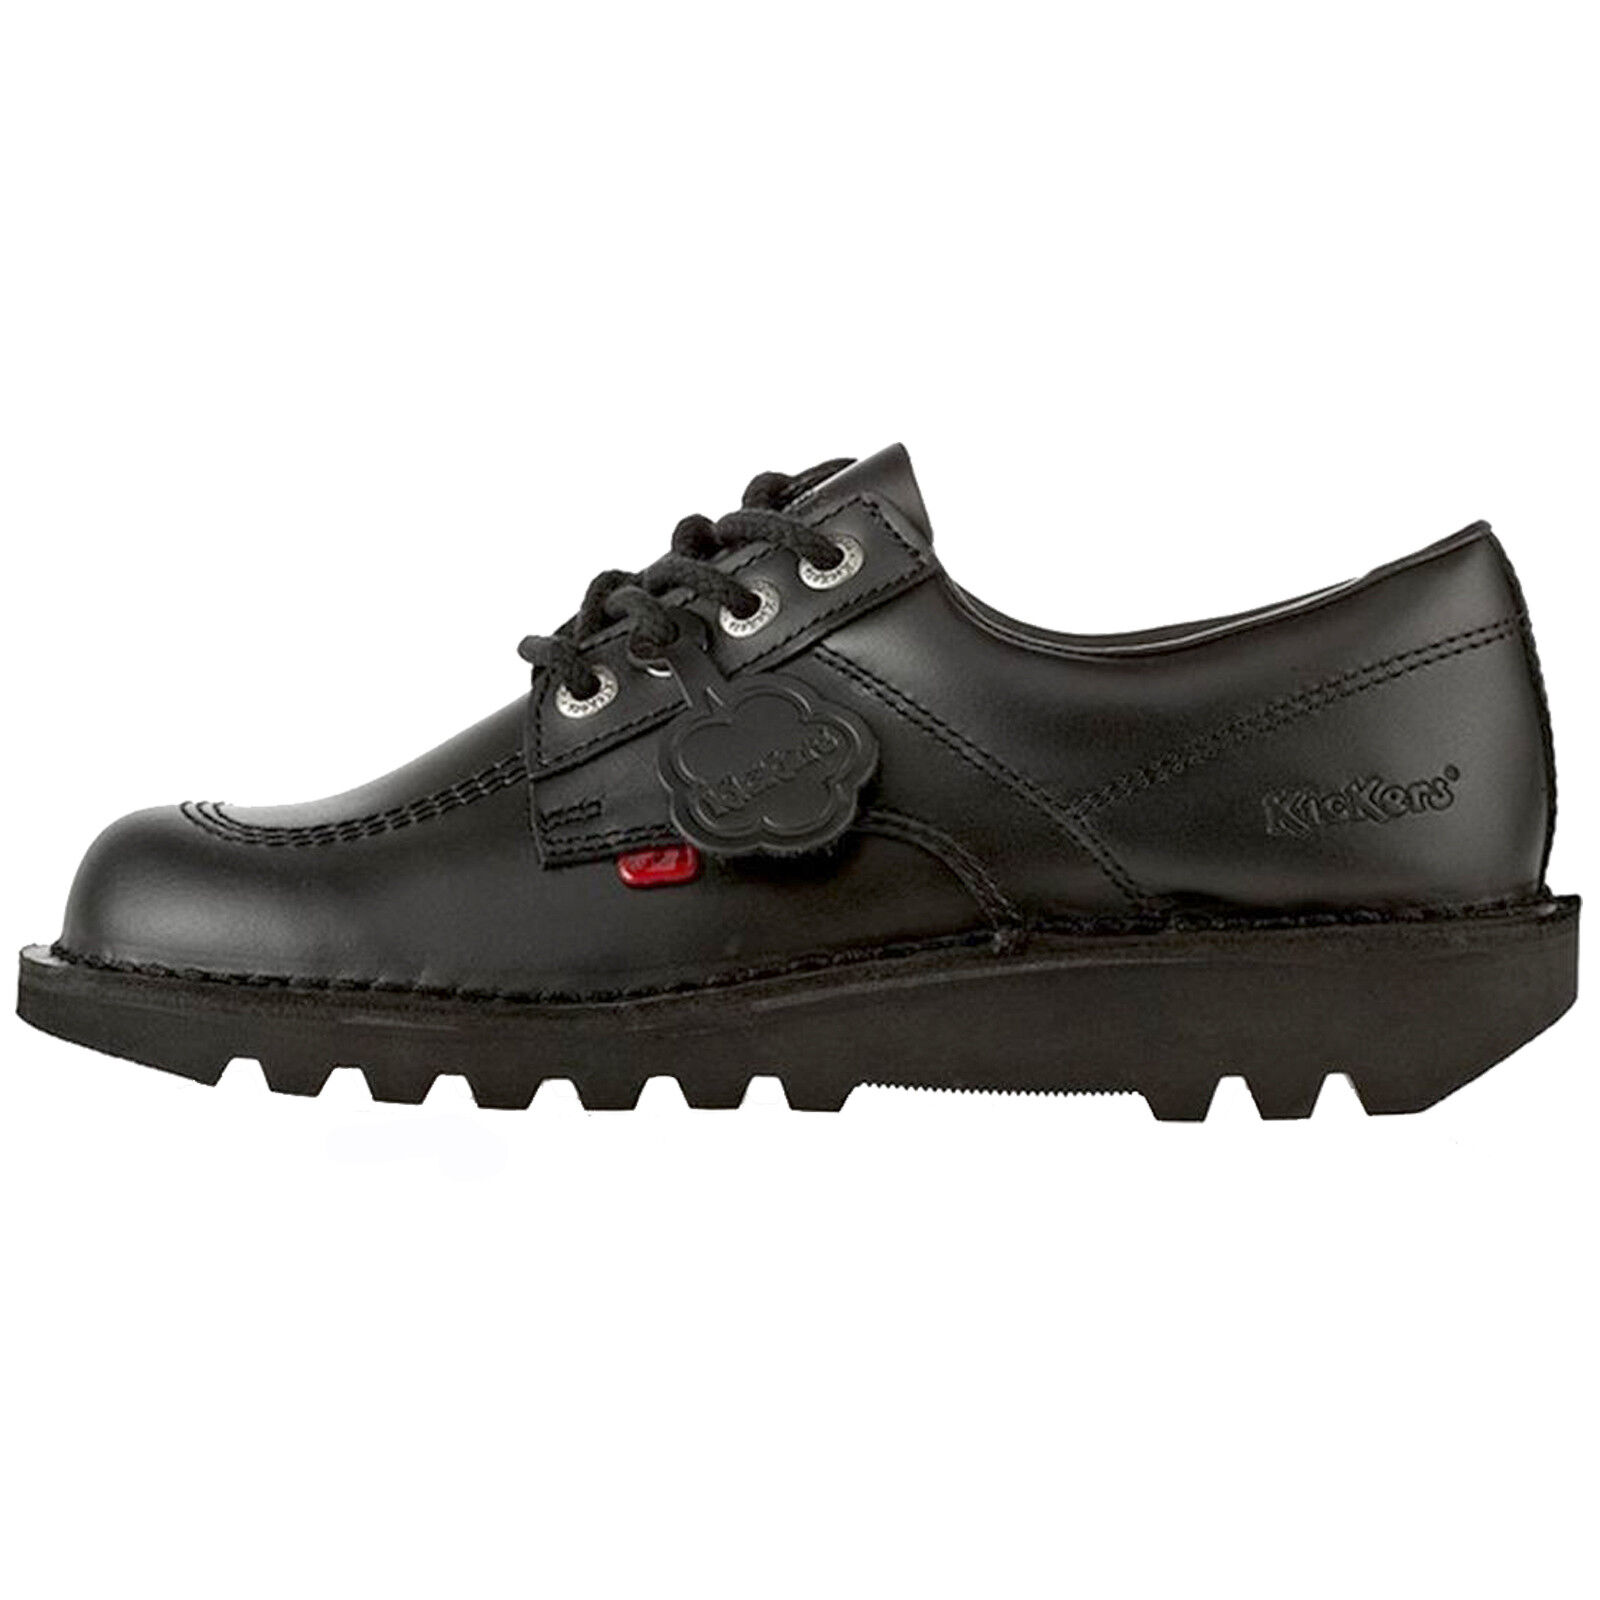 LADIES KICKERS KICK LOW W CORE CORE CORE BLACK LEATHER LACE UP SCHOOL SHOES e1da31